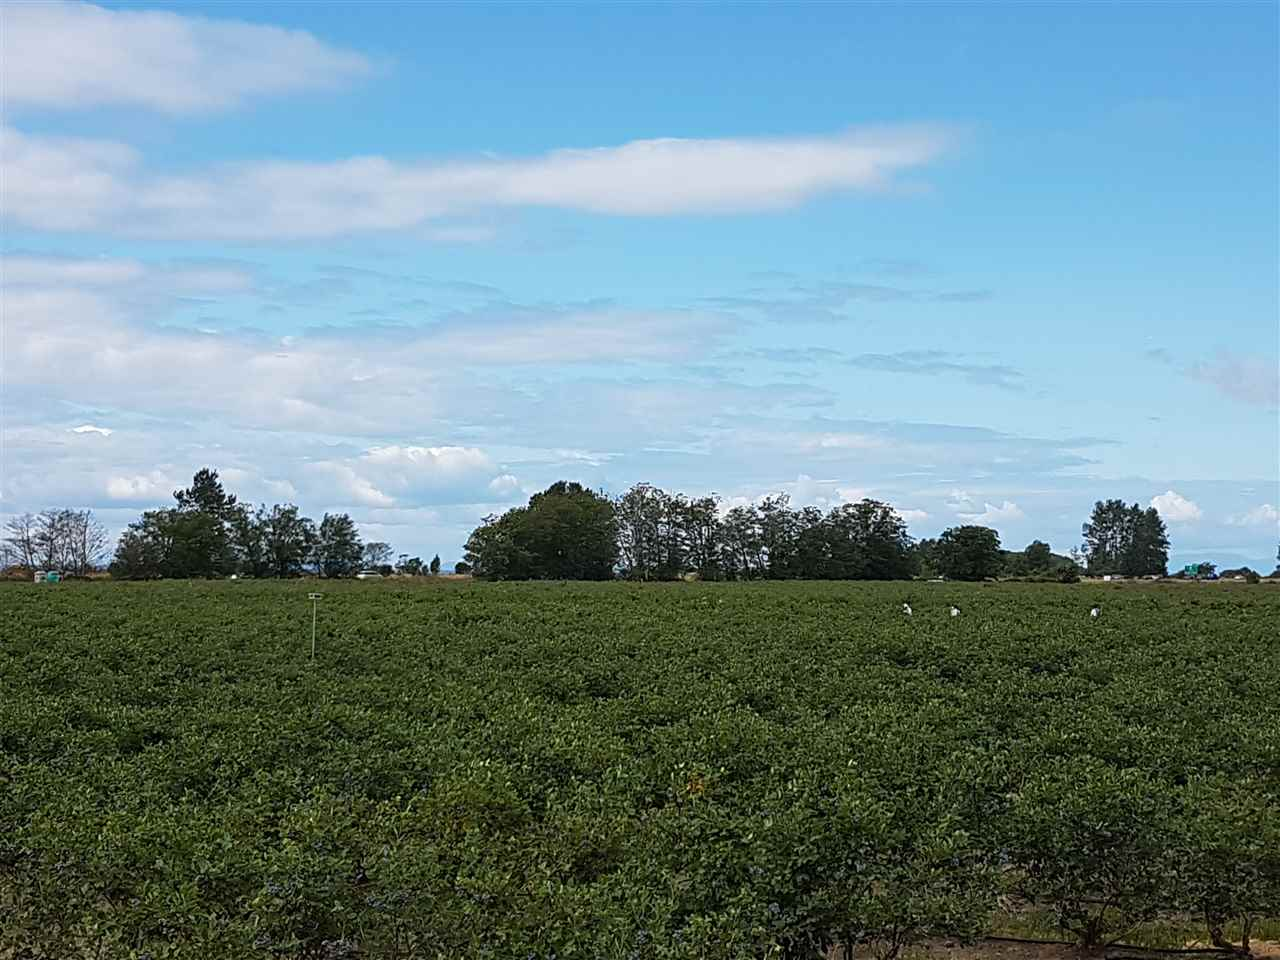 Established 39.29 acres Blueberry farm in prime Surrey location. In 2016 approximately 350,000 LBS of blueberries were produced. This farm includes 2 varieties of blueberries, Bluecrop and Duke. Property includes a 4 Bedroom/3 Bathroom rancher, two 40 x 60 sheds, a pump house with full drop irrigation and fertilizer injector system. There is also a 1,000 gallon storage diesel tank. Easy access to the Highway #99 and #10 and is close to the USA-Canada Border. Outstanding opportunity here! Inquire for more details.